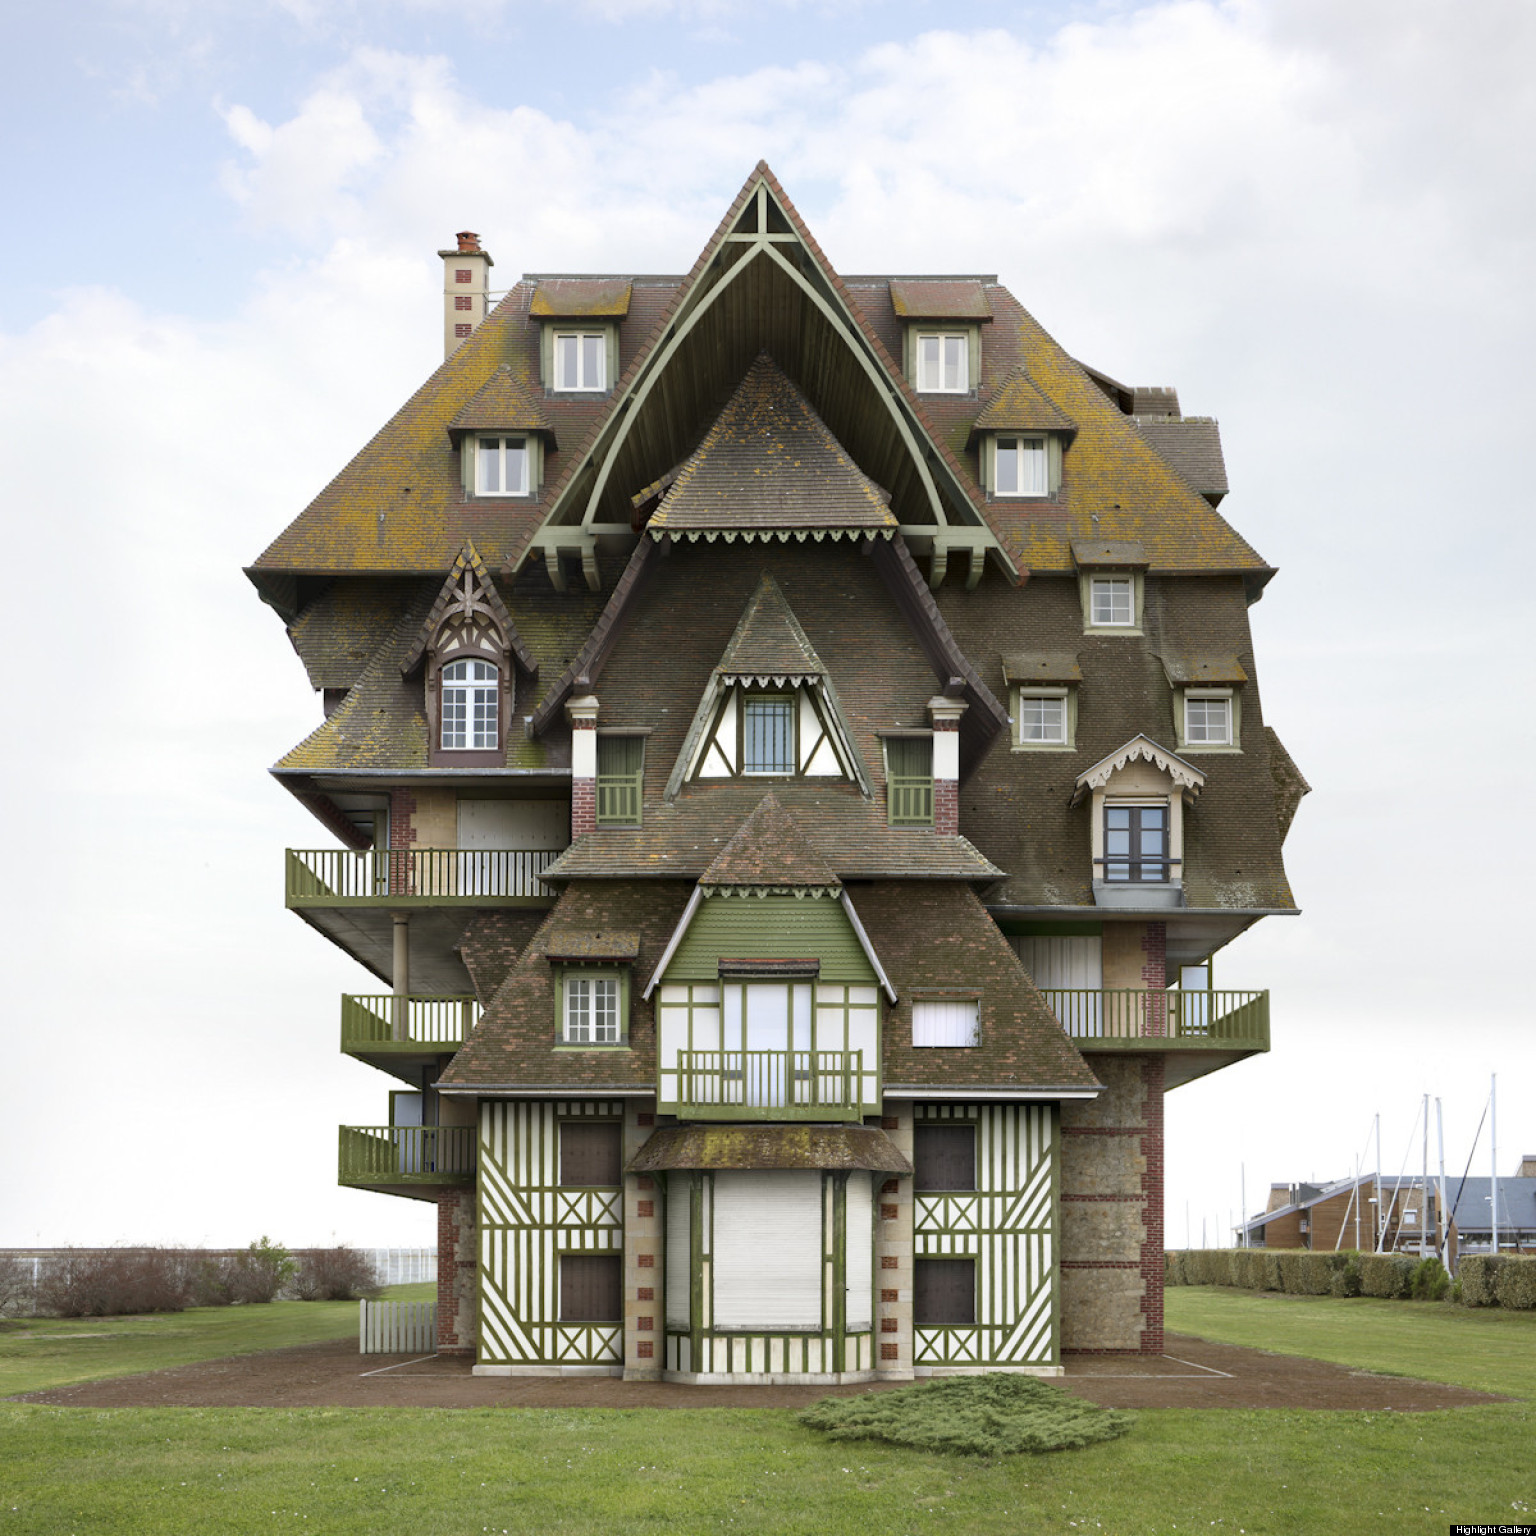 Filip dujardin 39 s 39 dis location 39 exhibit showcases bizarre for Dujardin facebook